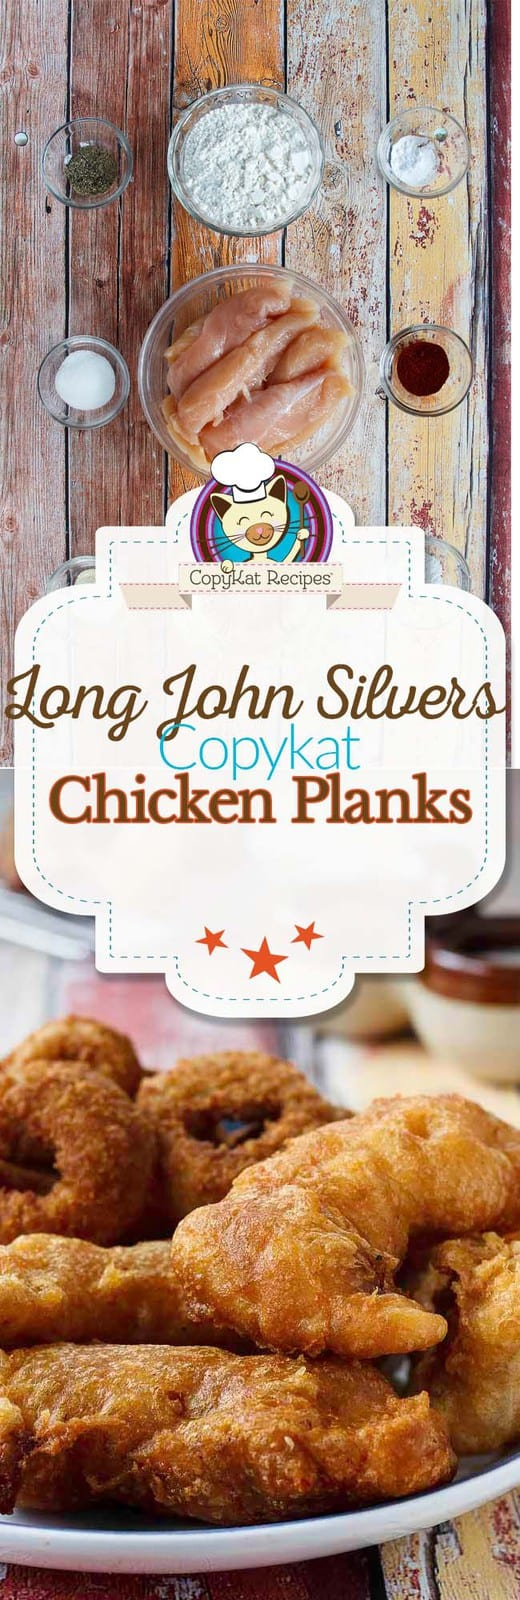 Make your own homemade Long John Silvers Chicken Planks with this easy copycat recipe. #copycat #chicken #chickentenders #longjohnsilvers #recipe